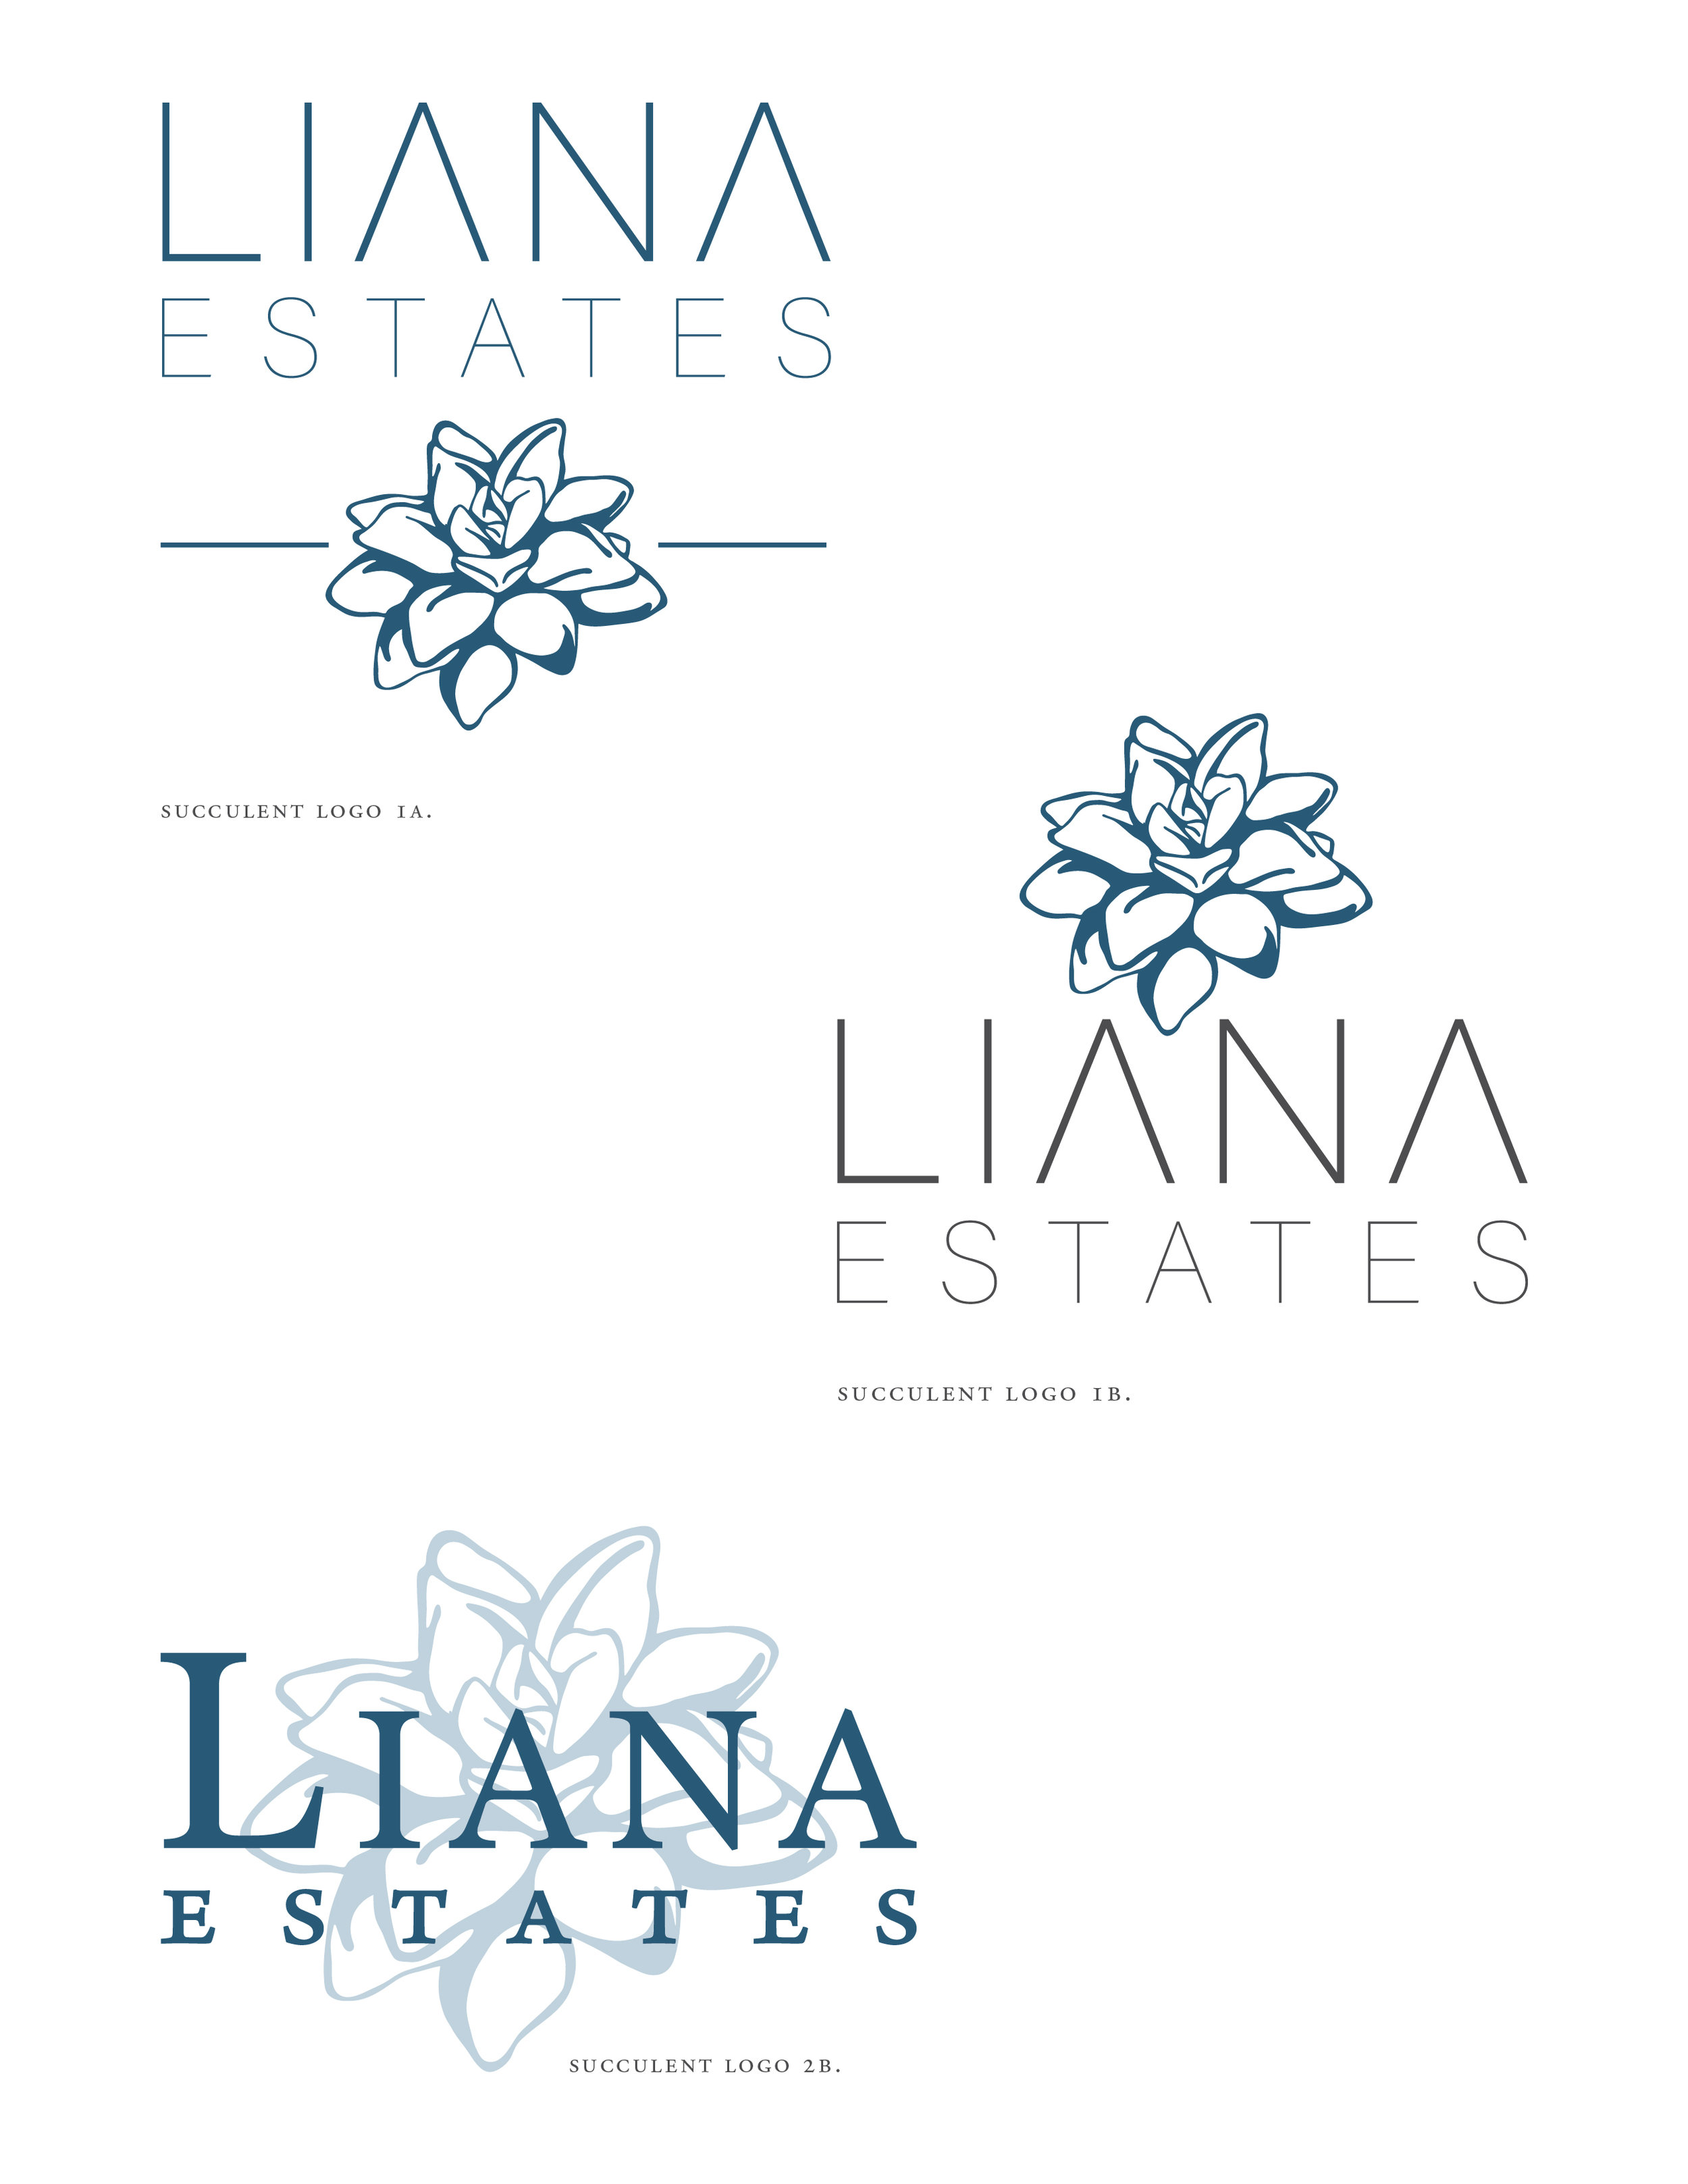 Options! Options! Options!   For a client that has a very vague idea of the aesthetic they are looking to build on, having lots of options can help them narrow things down. Seeing what you don't want will always (eventually) lead you to what you do want. Here we have some options for logos that were presented.